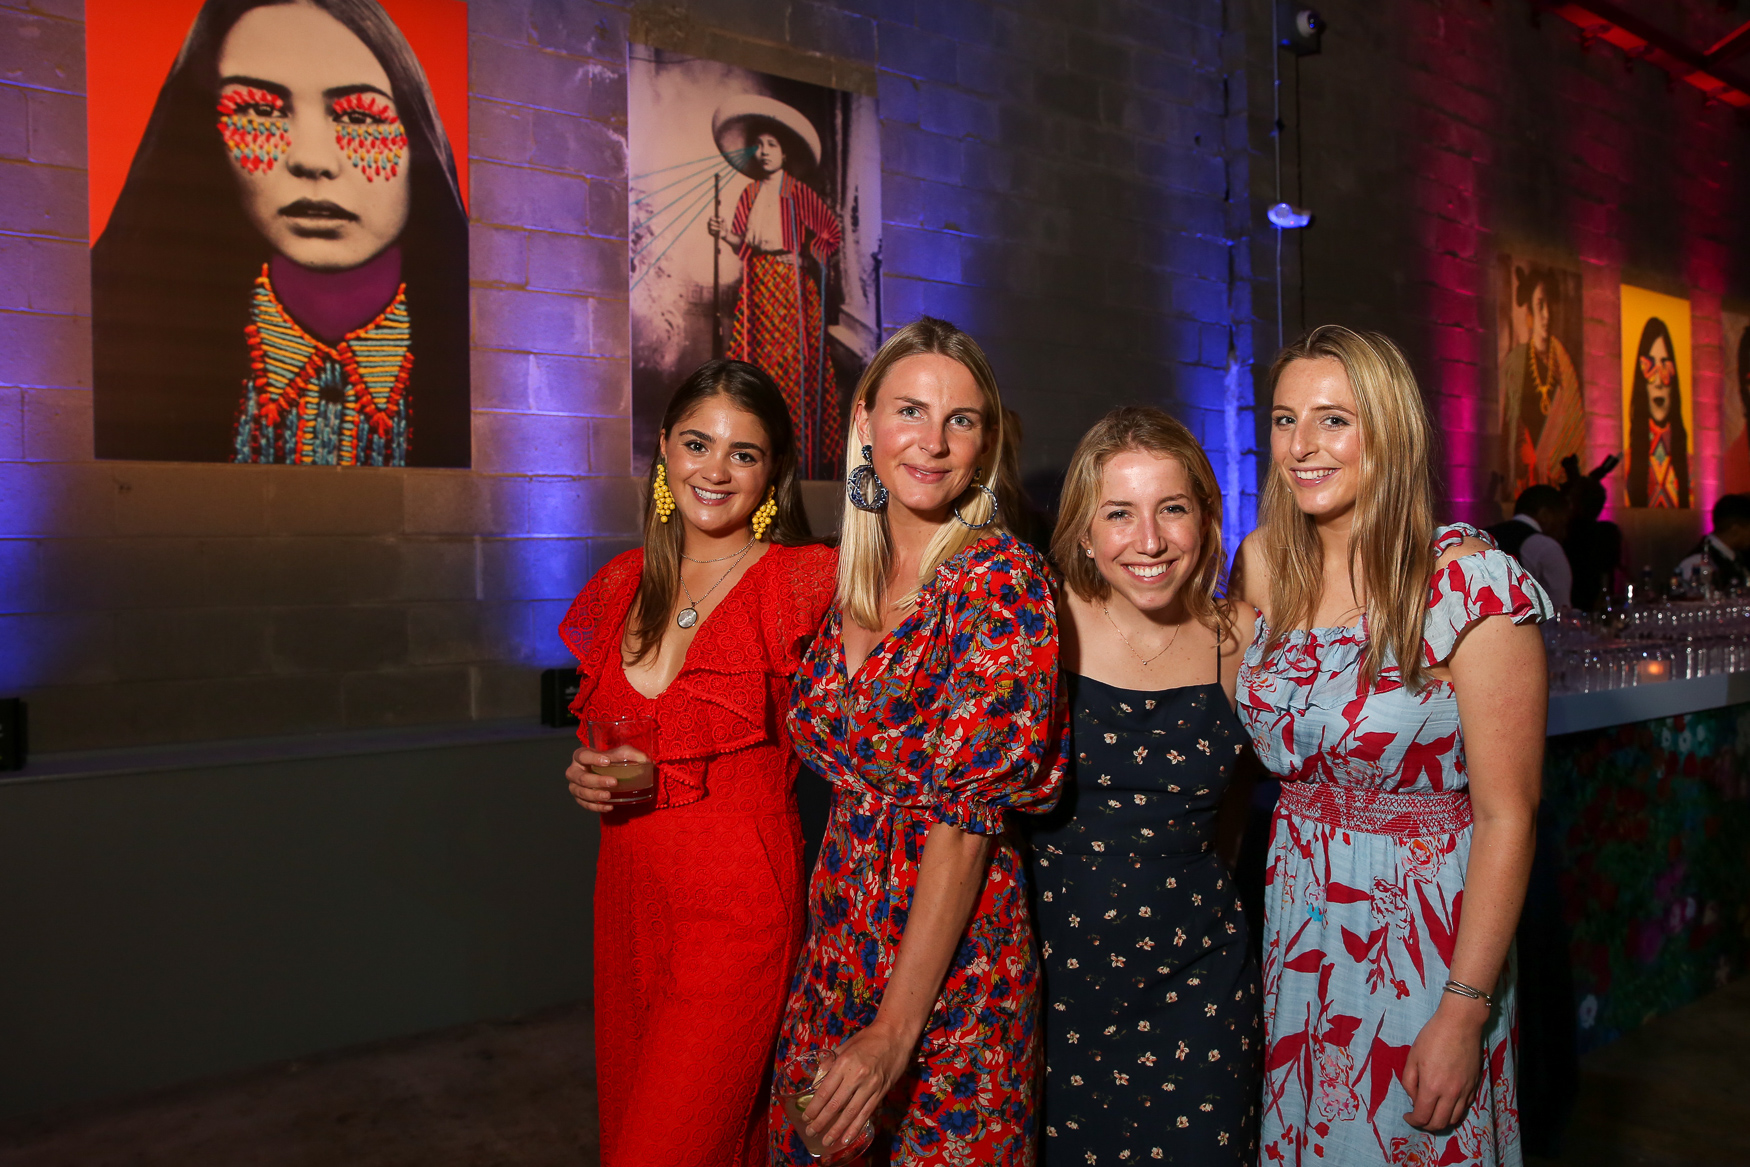 This group of bright frocks at The Phillips Collections' annual party is a lesson on embracing color - we definitely have our eye on the blue-and-red number on the end.{ }(Amanda Andrade-Rhoades/DC Refined)